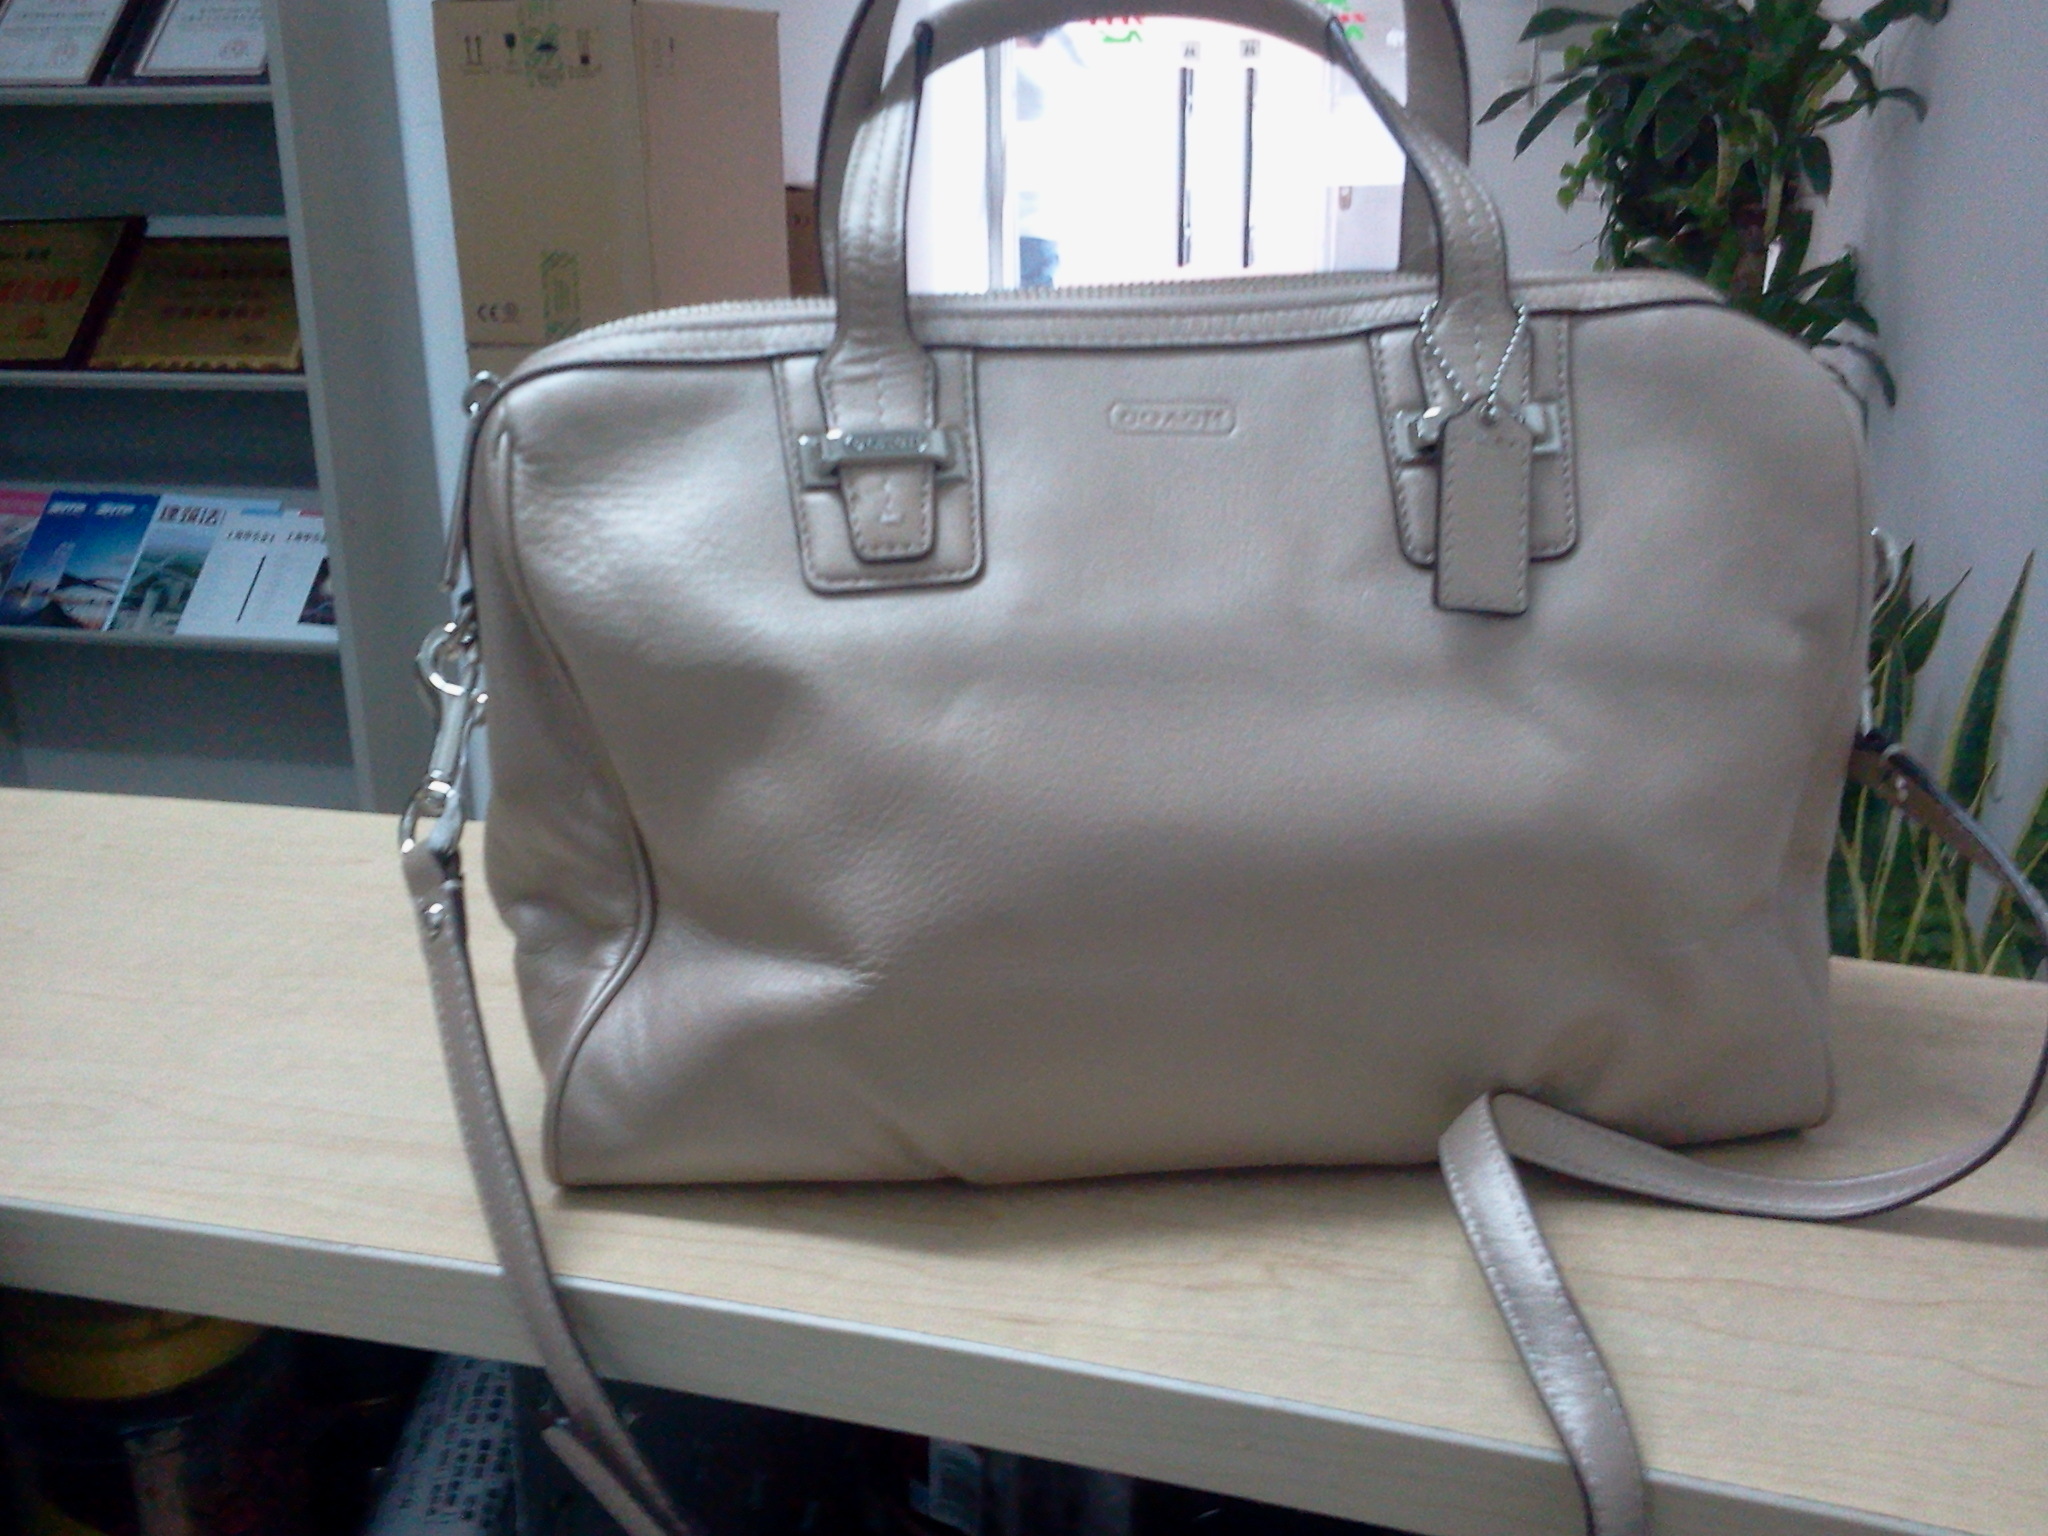 lv bags collection 00930854 onsale